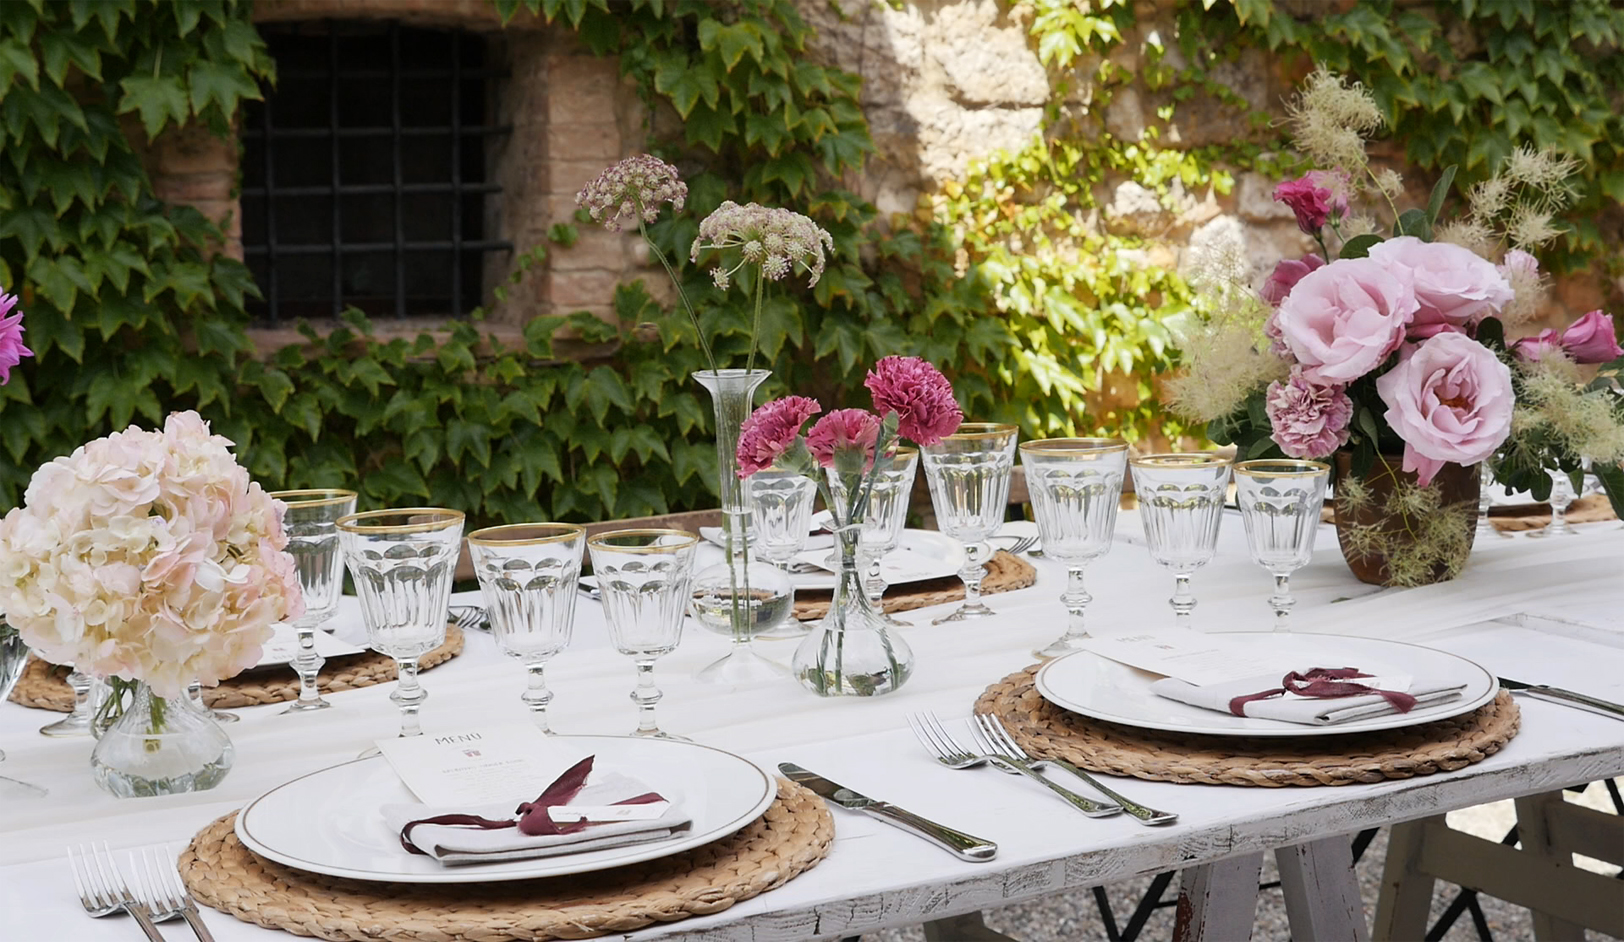 wedding-in-fattoria-of-larniano-tuscany-flowers.jpg